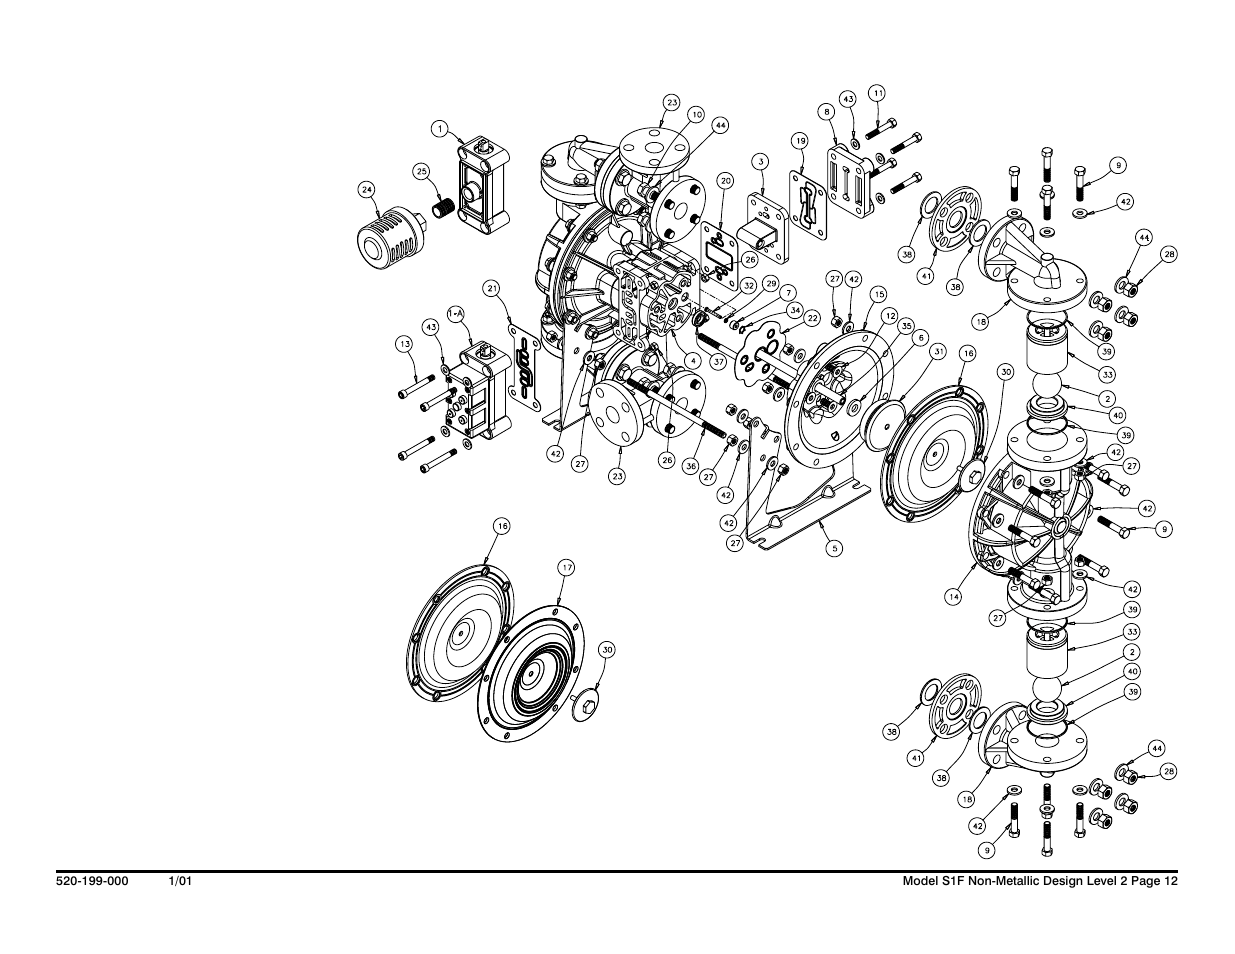 Composite Repair Parts Drawing Overlay Option Drawing